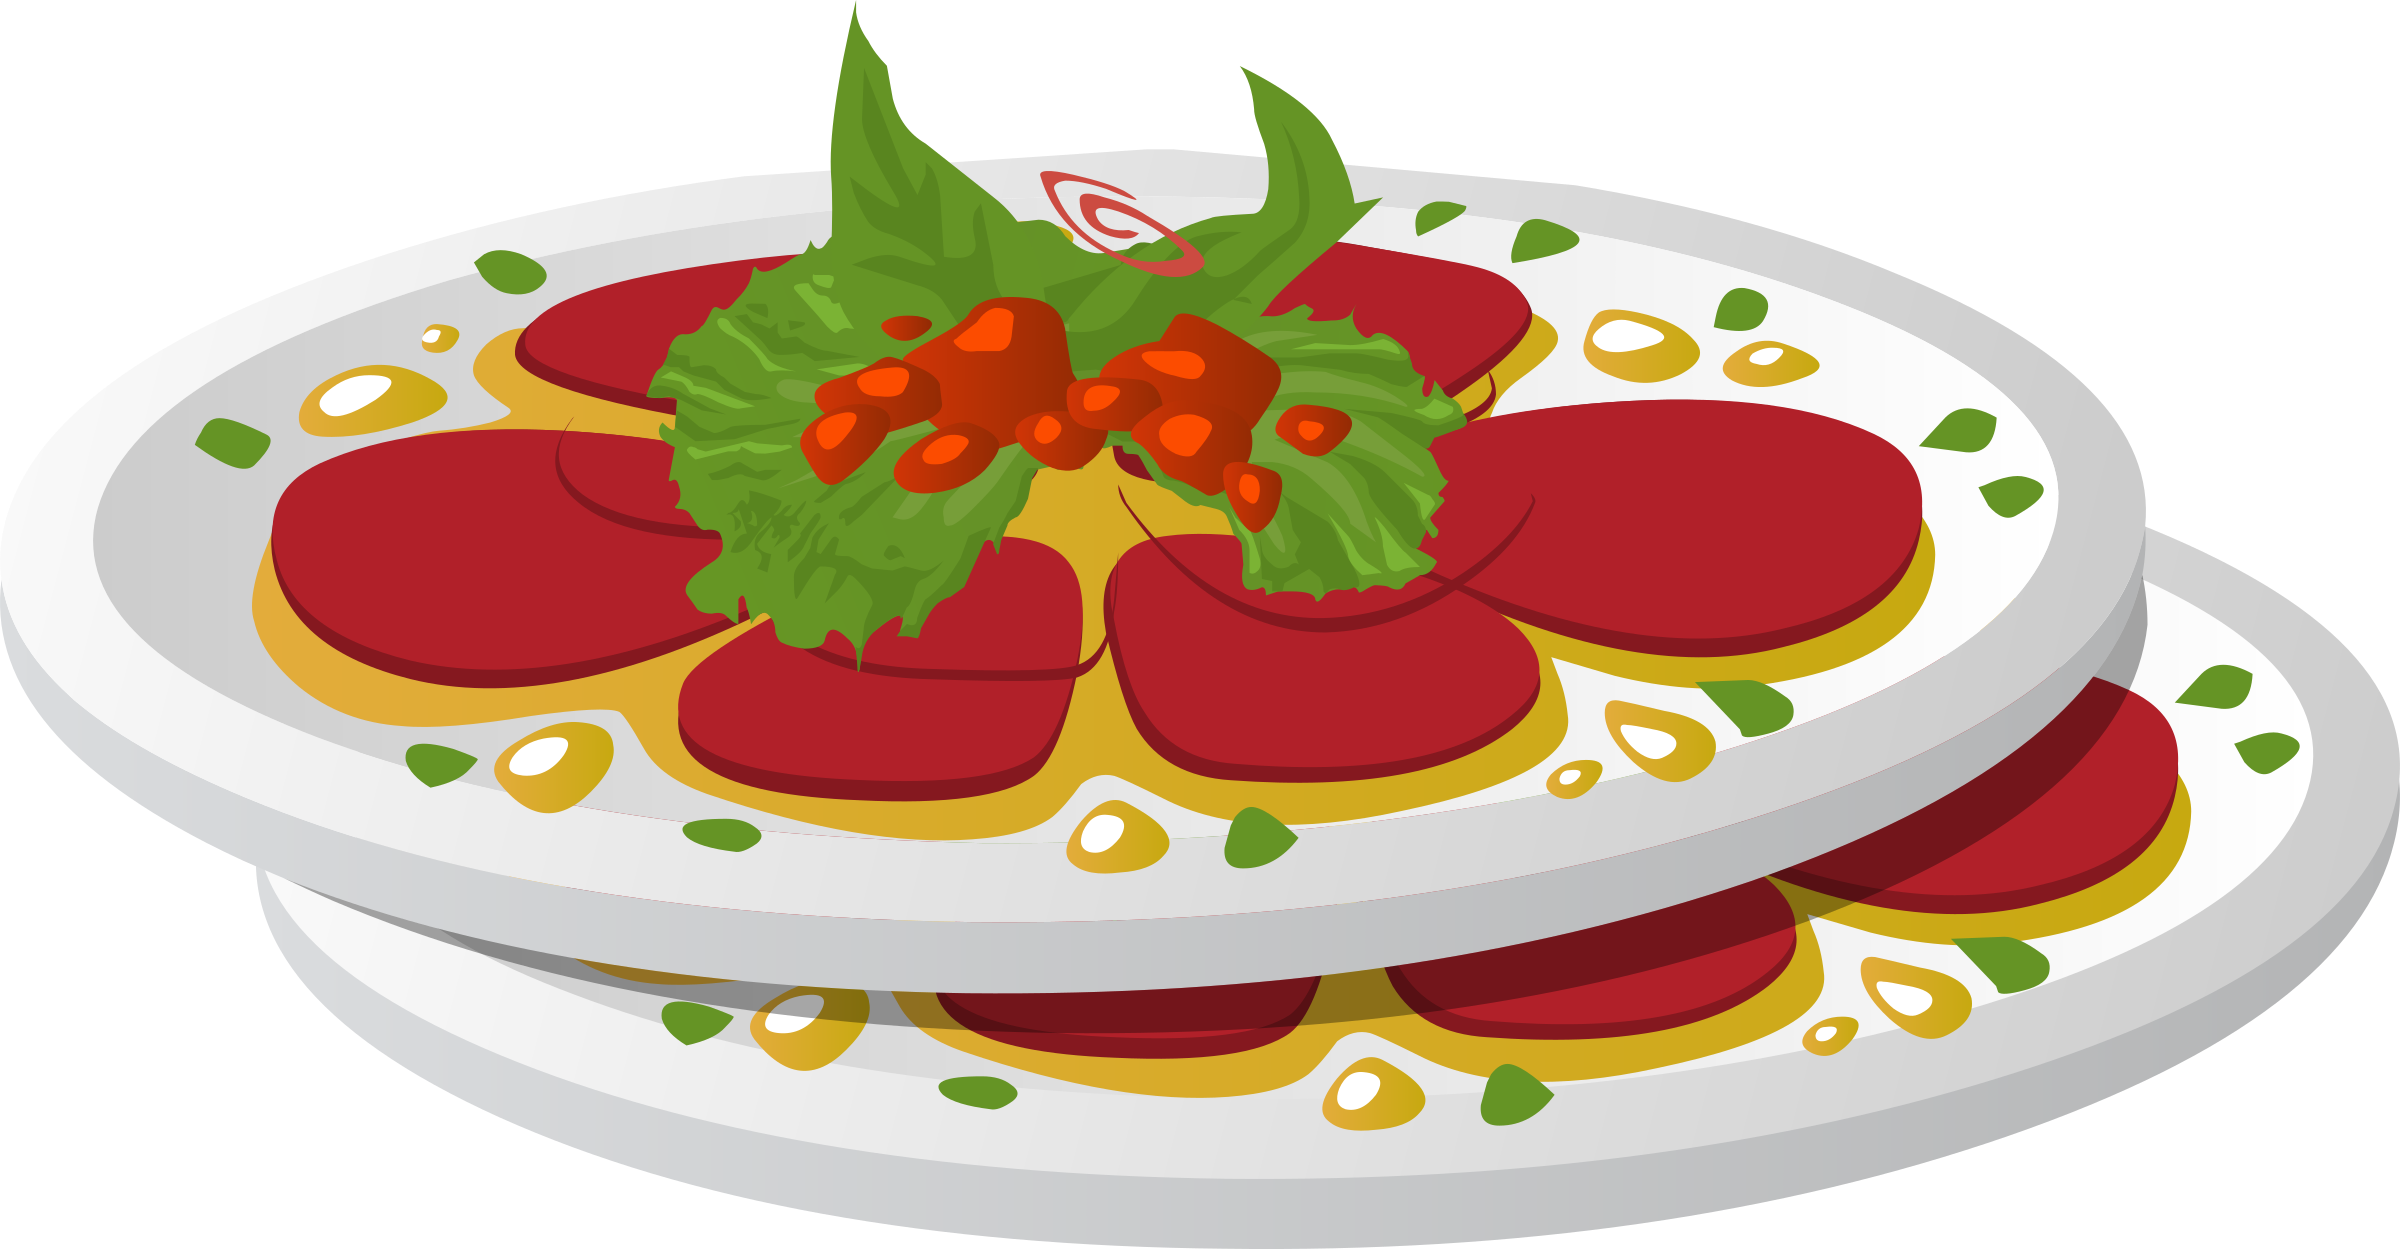 Strawberries clipart juicy. Food carpaccio icons png